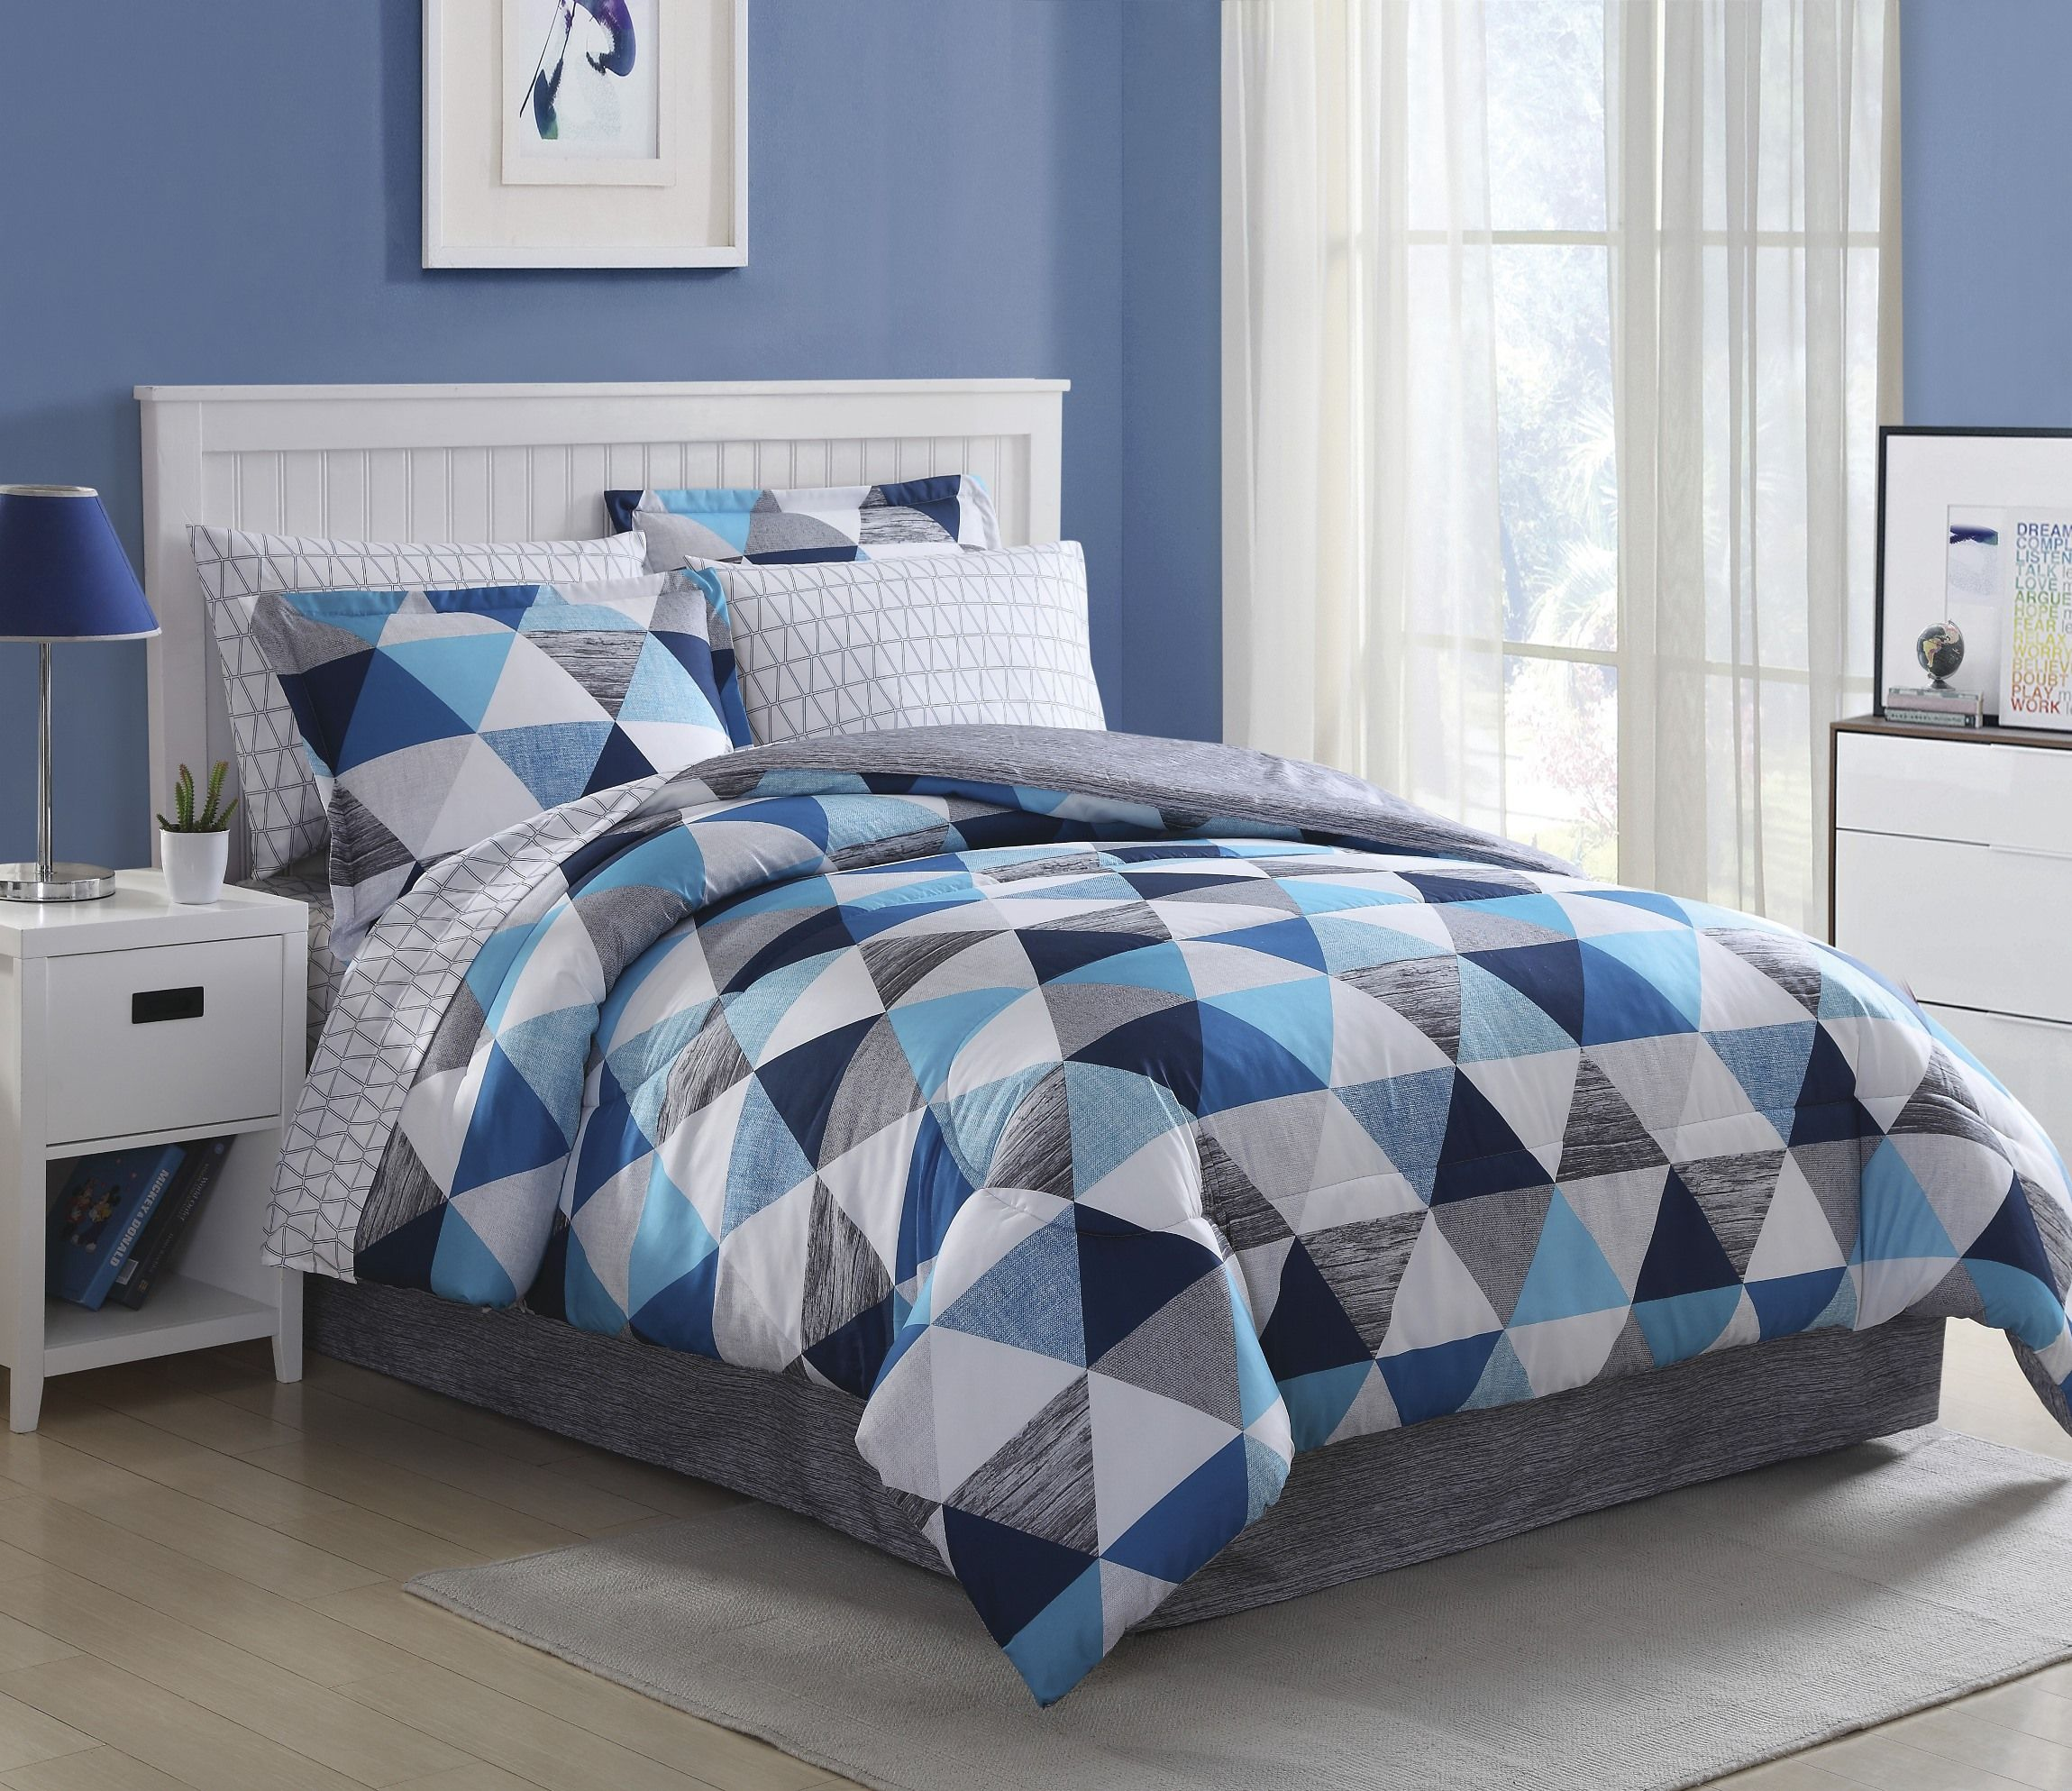 A Complete Bedding Set In A Cool Blue Triangles Pattern From